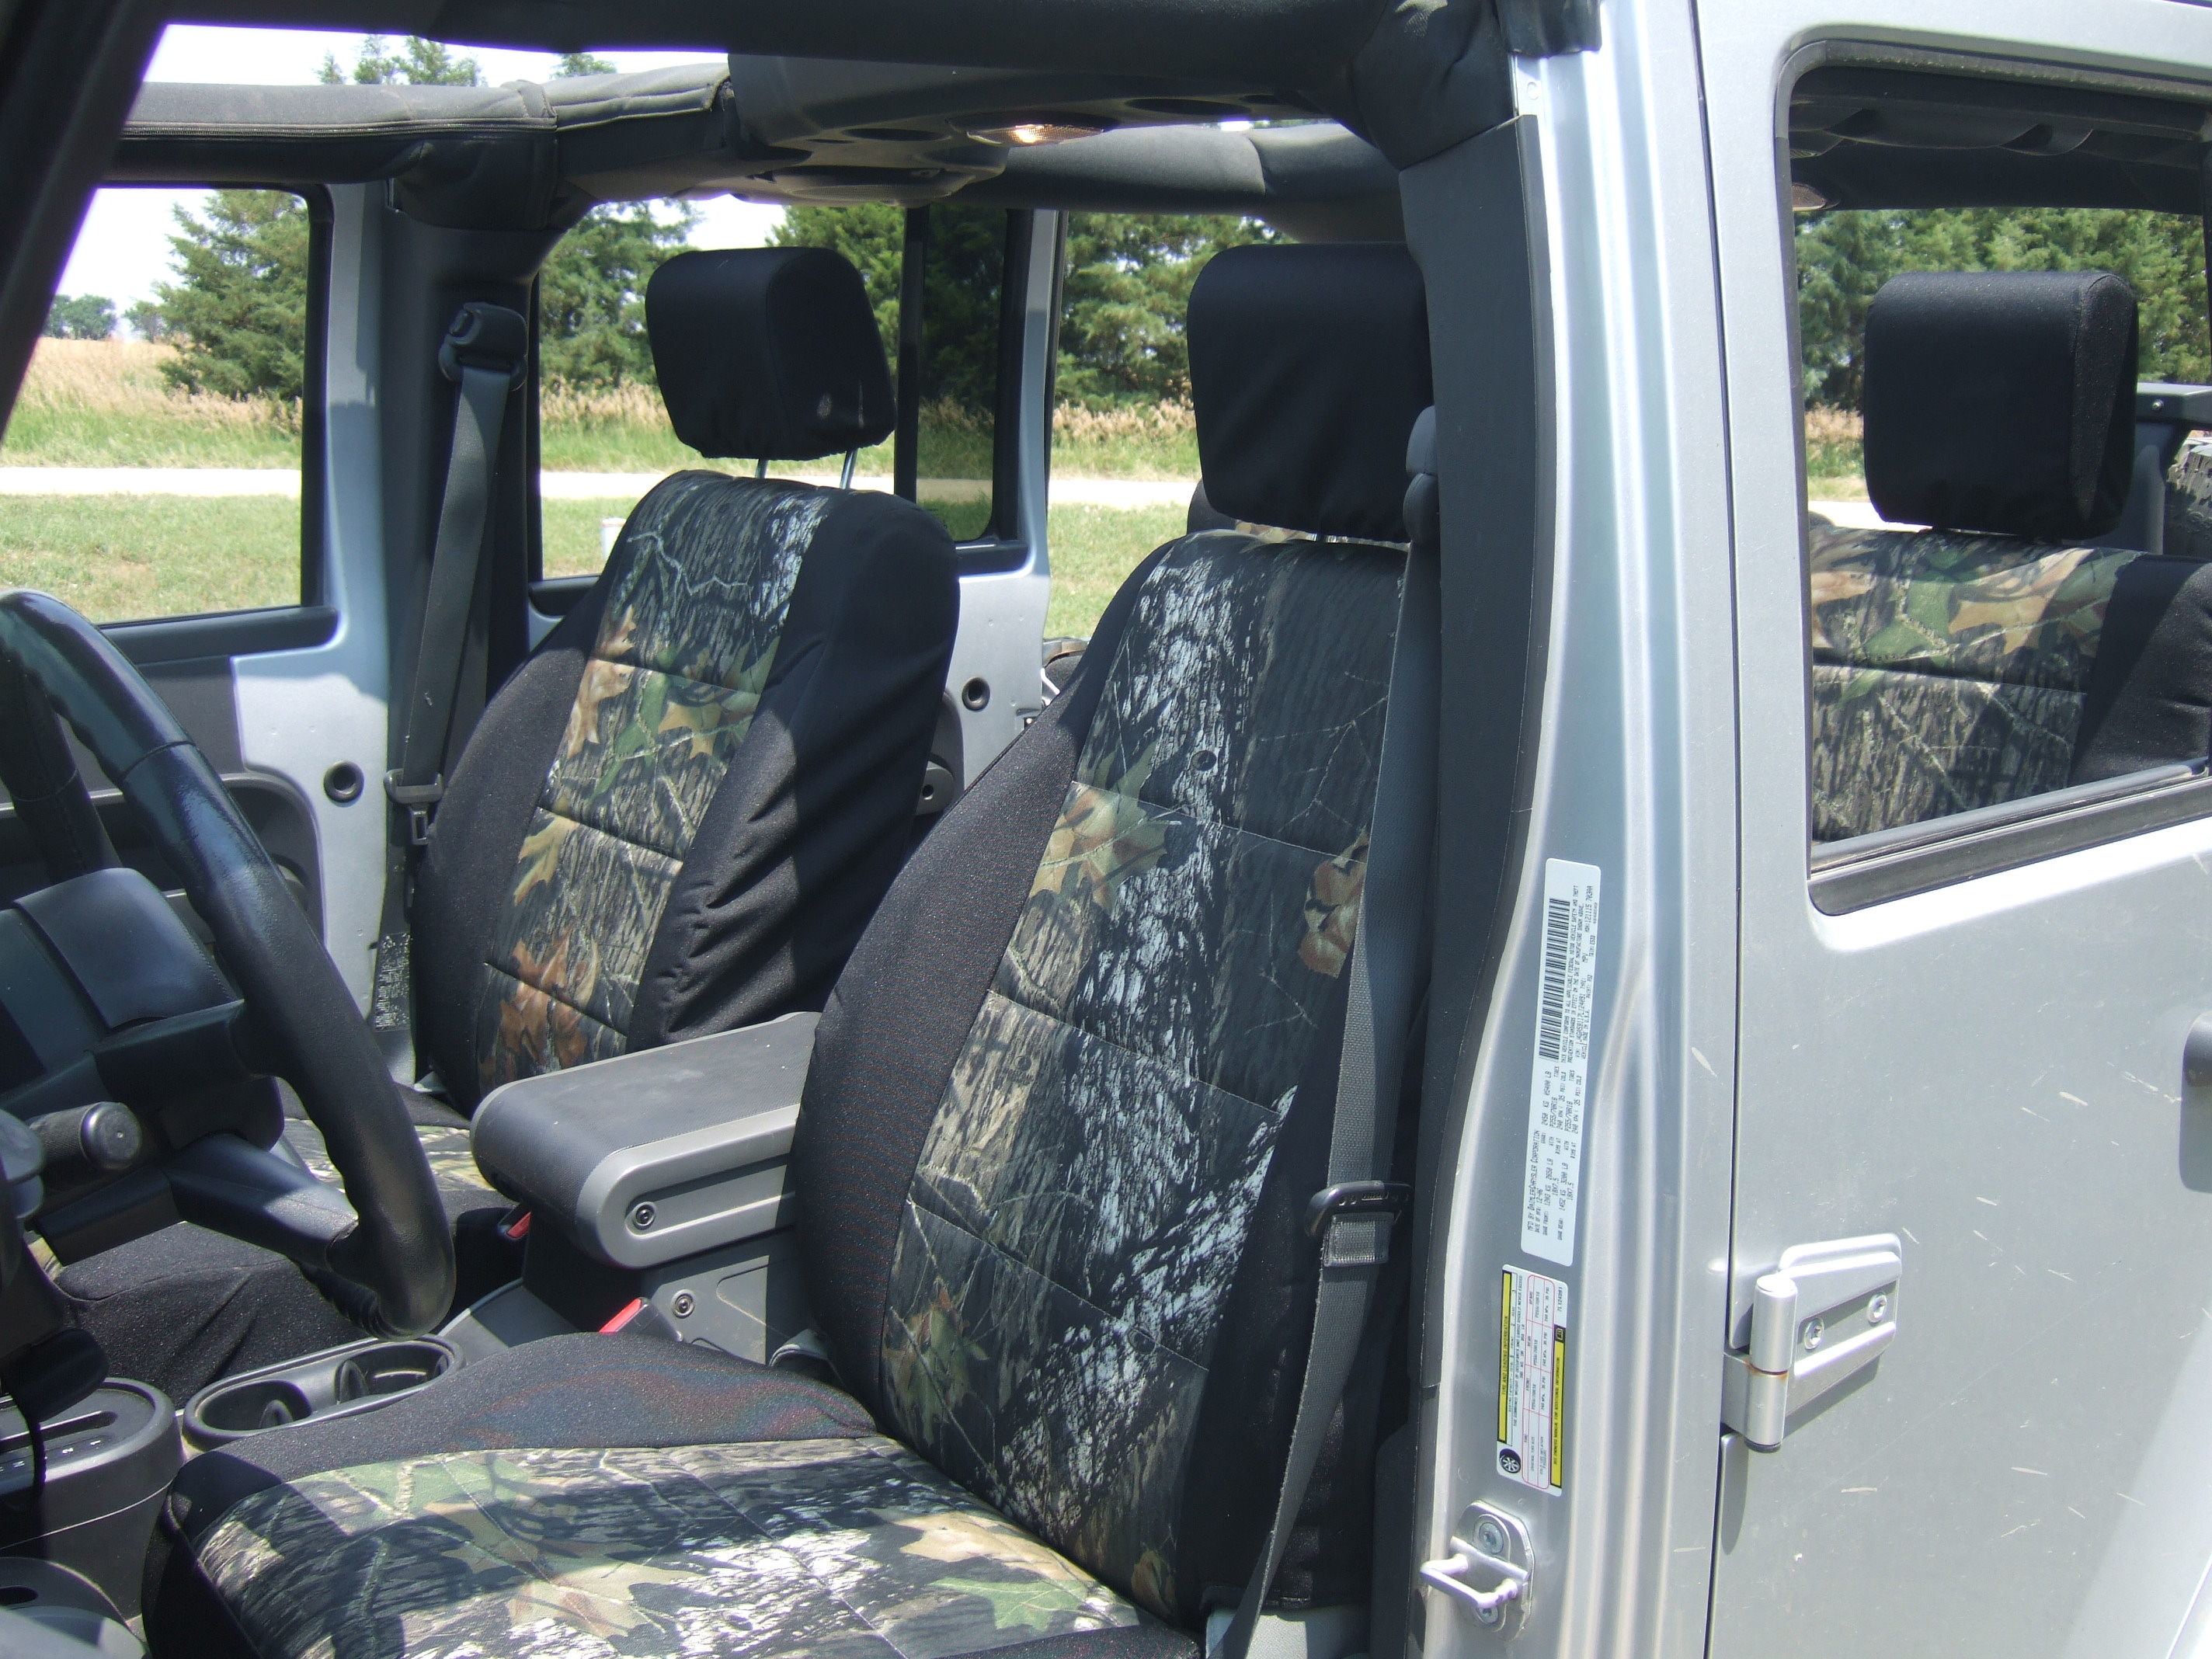 DSCF0666 DSCF0703 DSCF0720 Take A Look At These High Quality Seat Covers On This Jeep JK